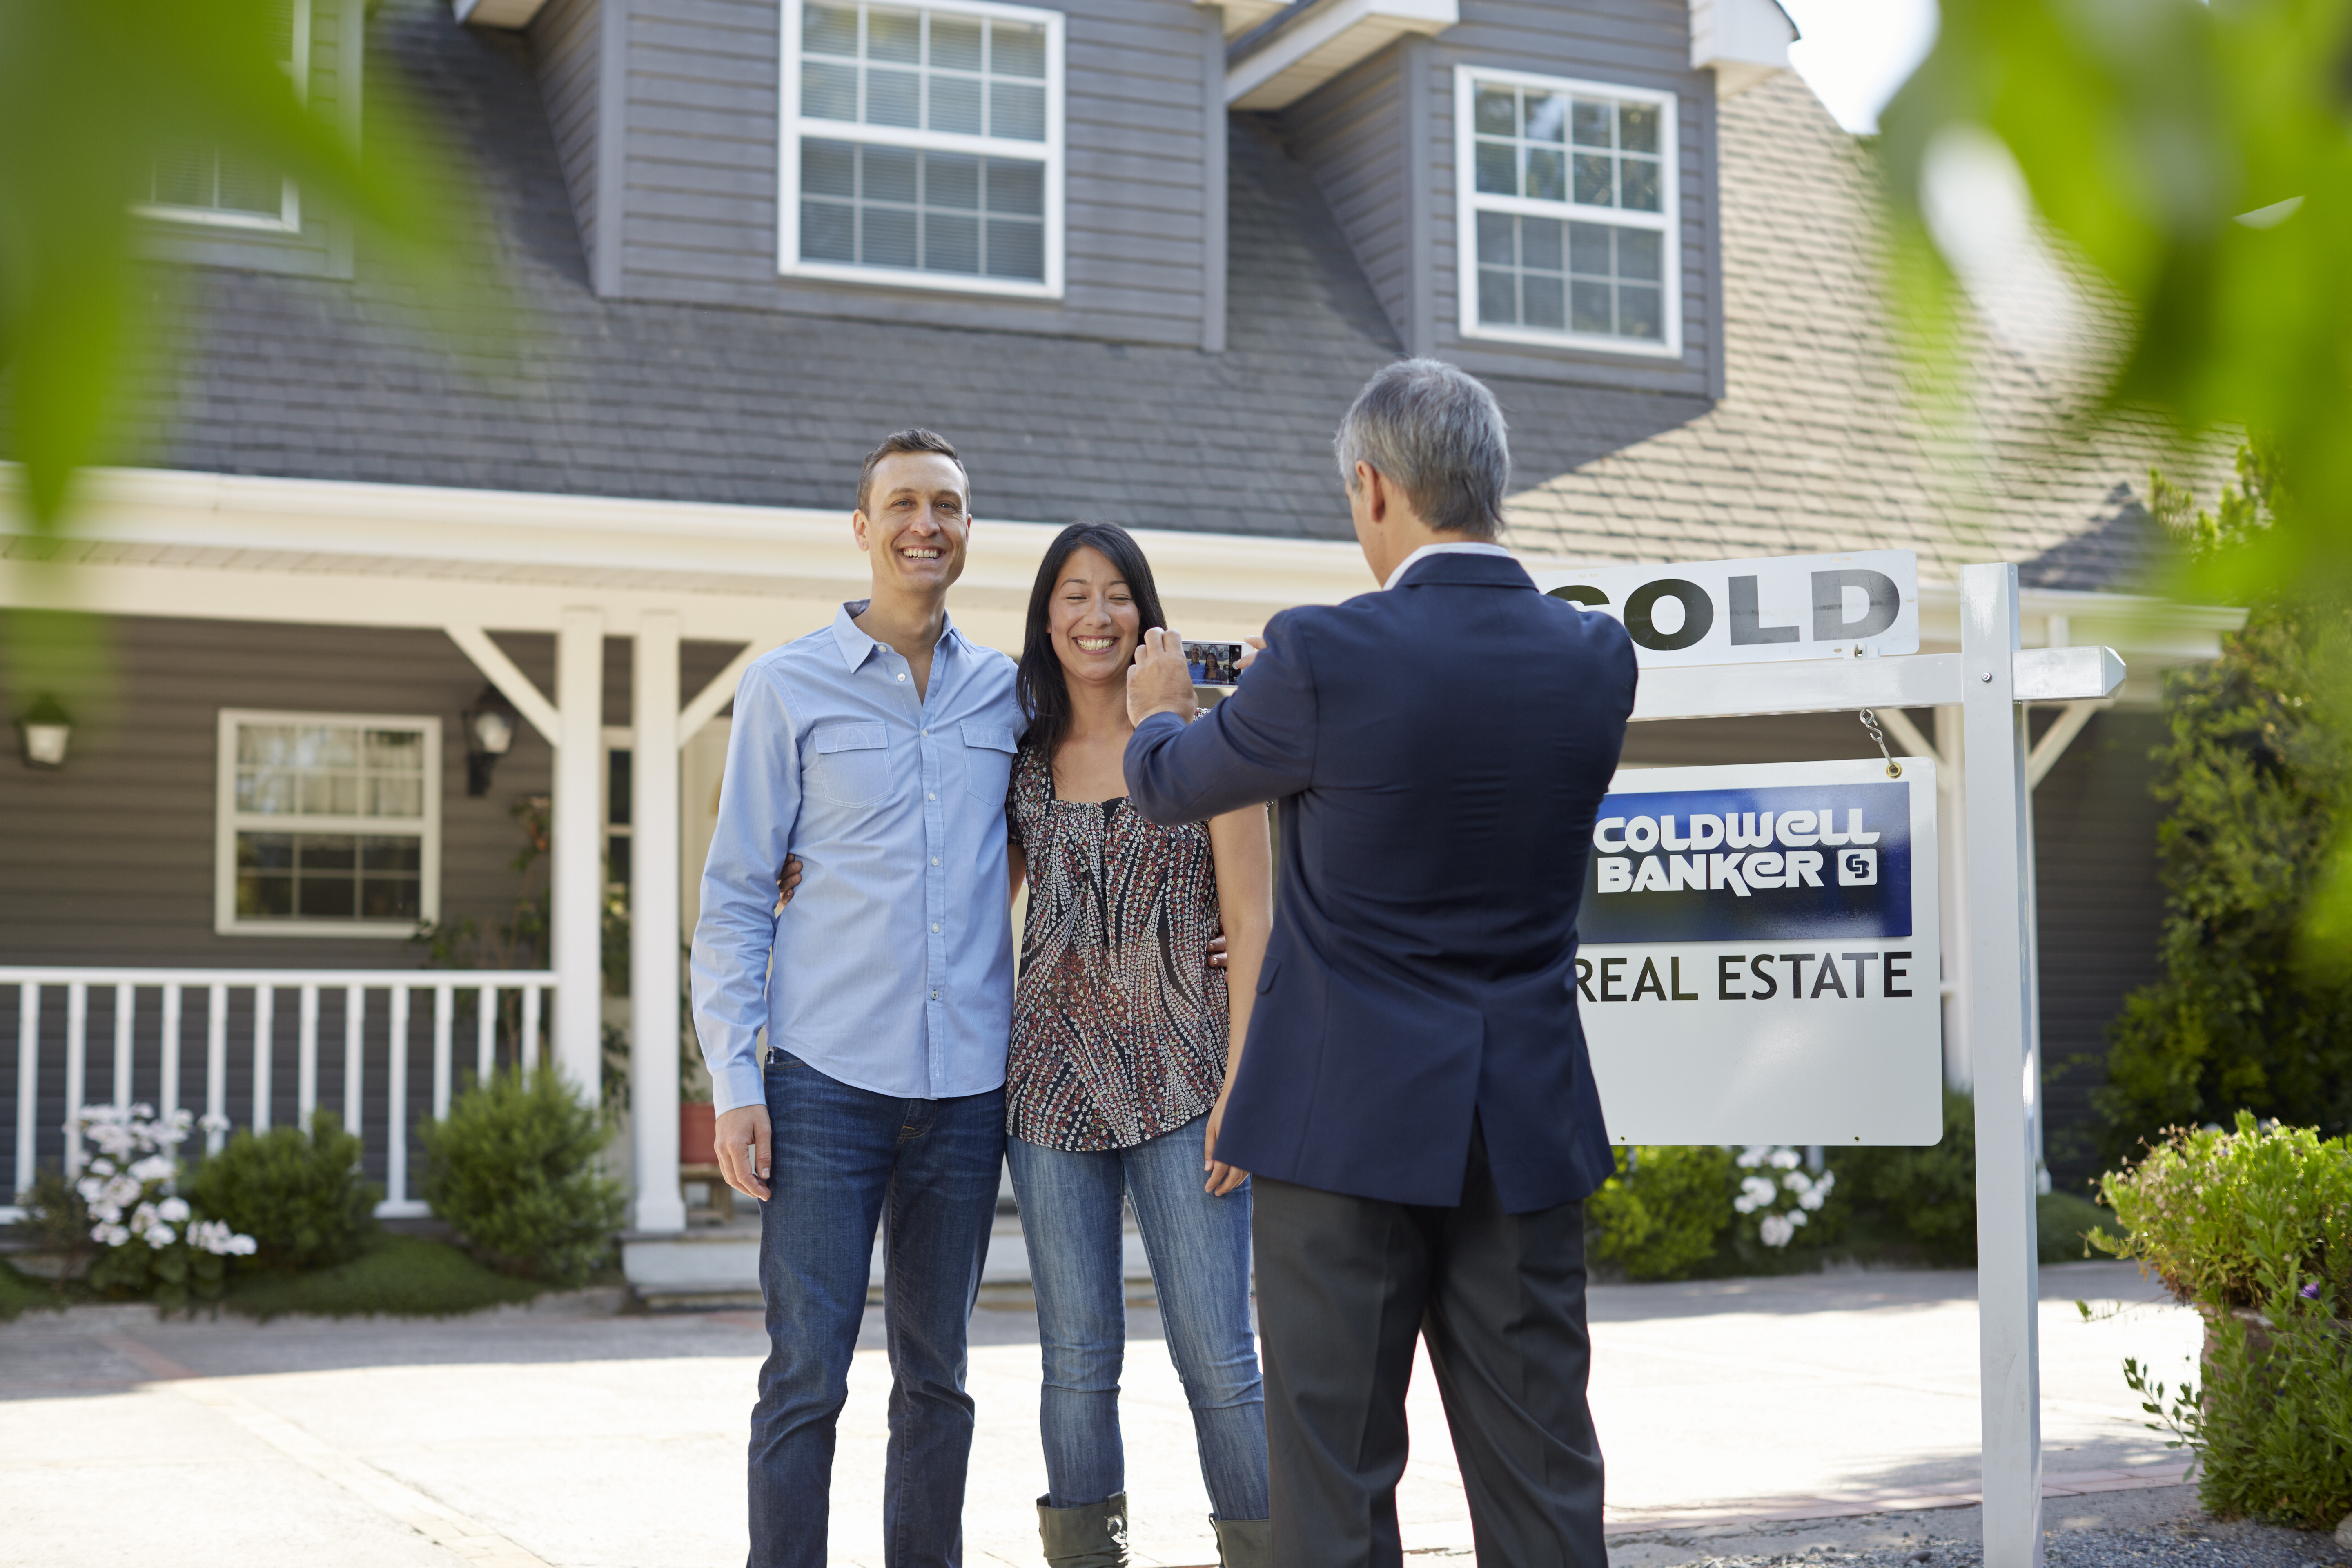 5 Essential Tips for Homebuying - Realtor taking picture of home buyers.